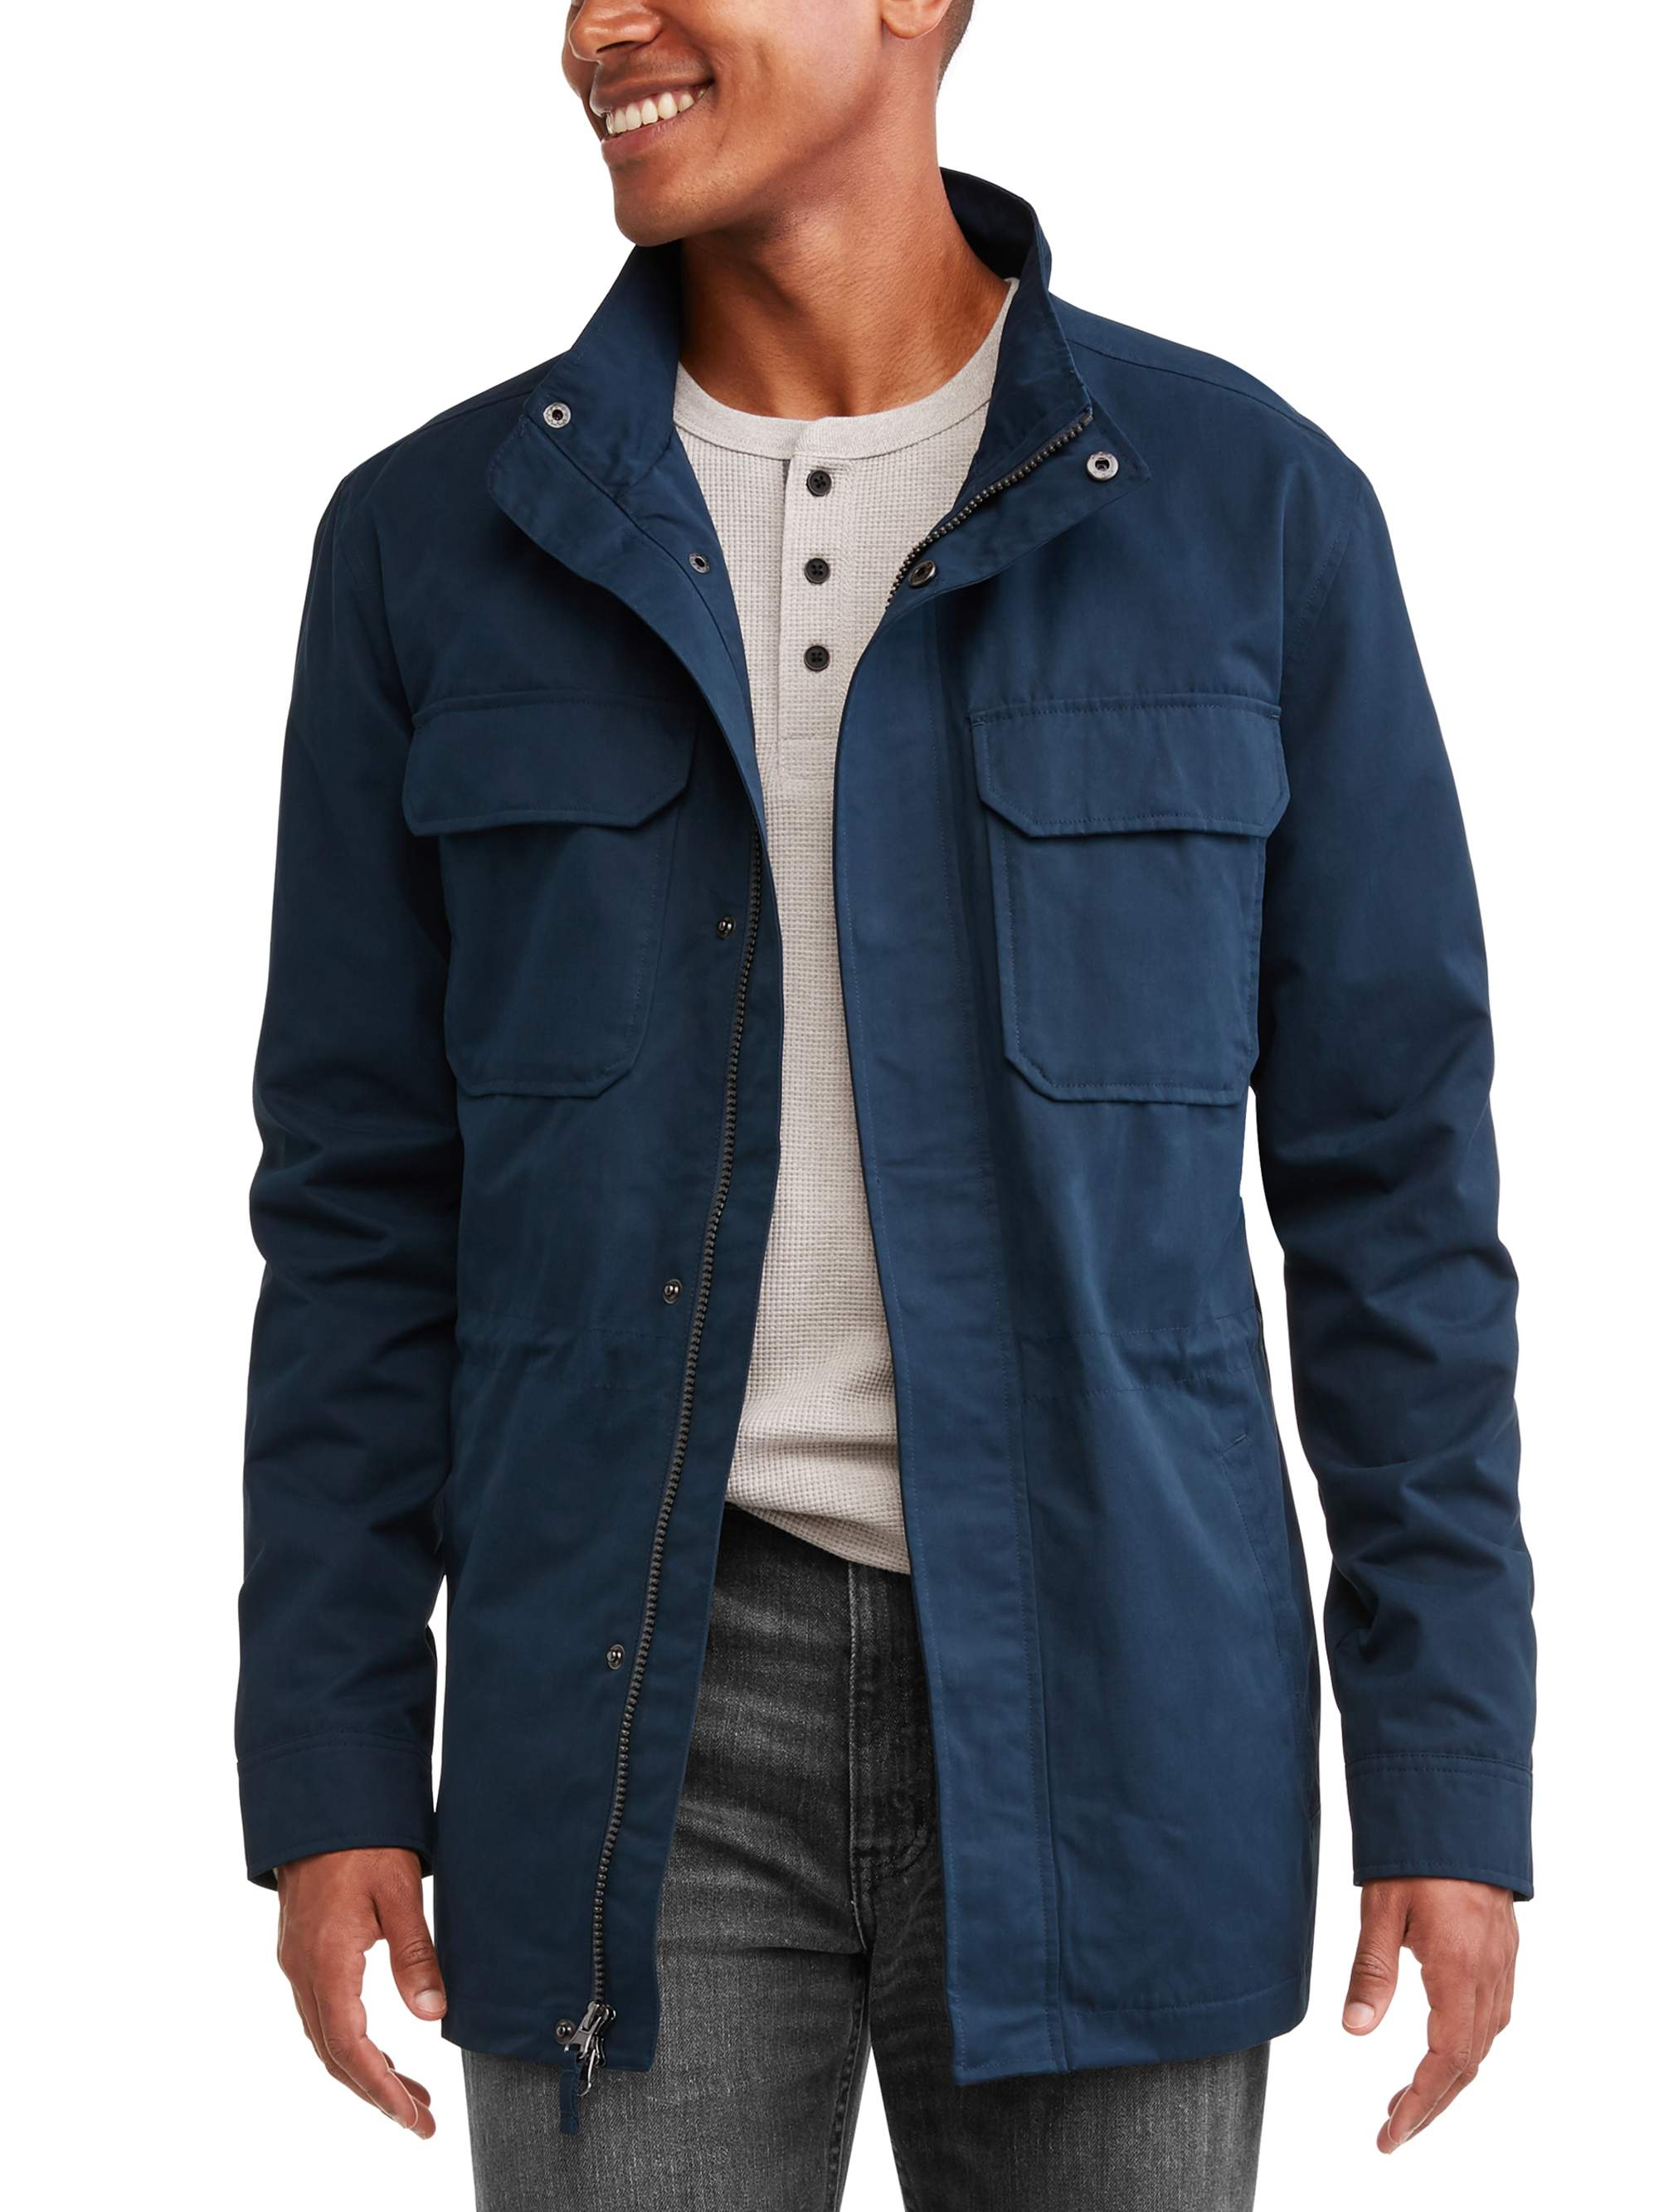 Field jacket for men: masculine and sporty through the outdoors